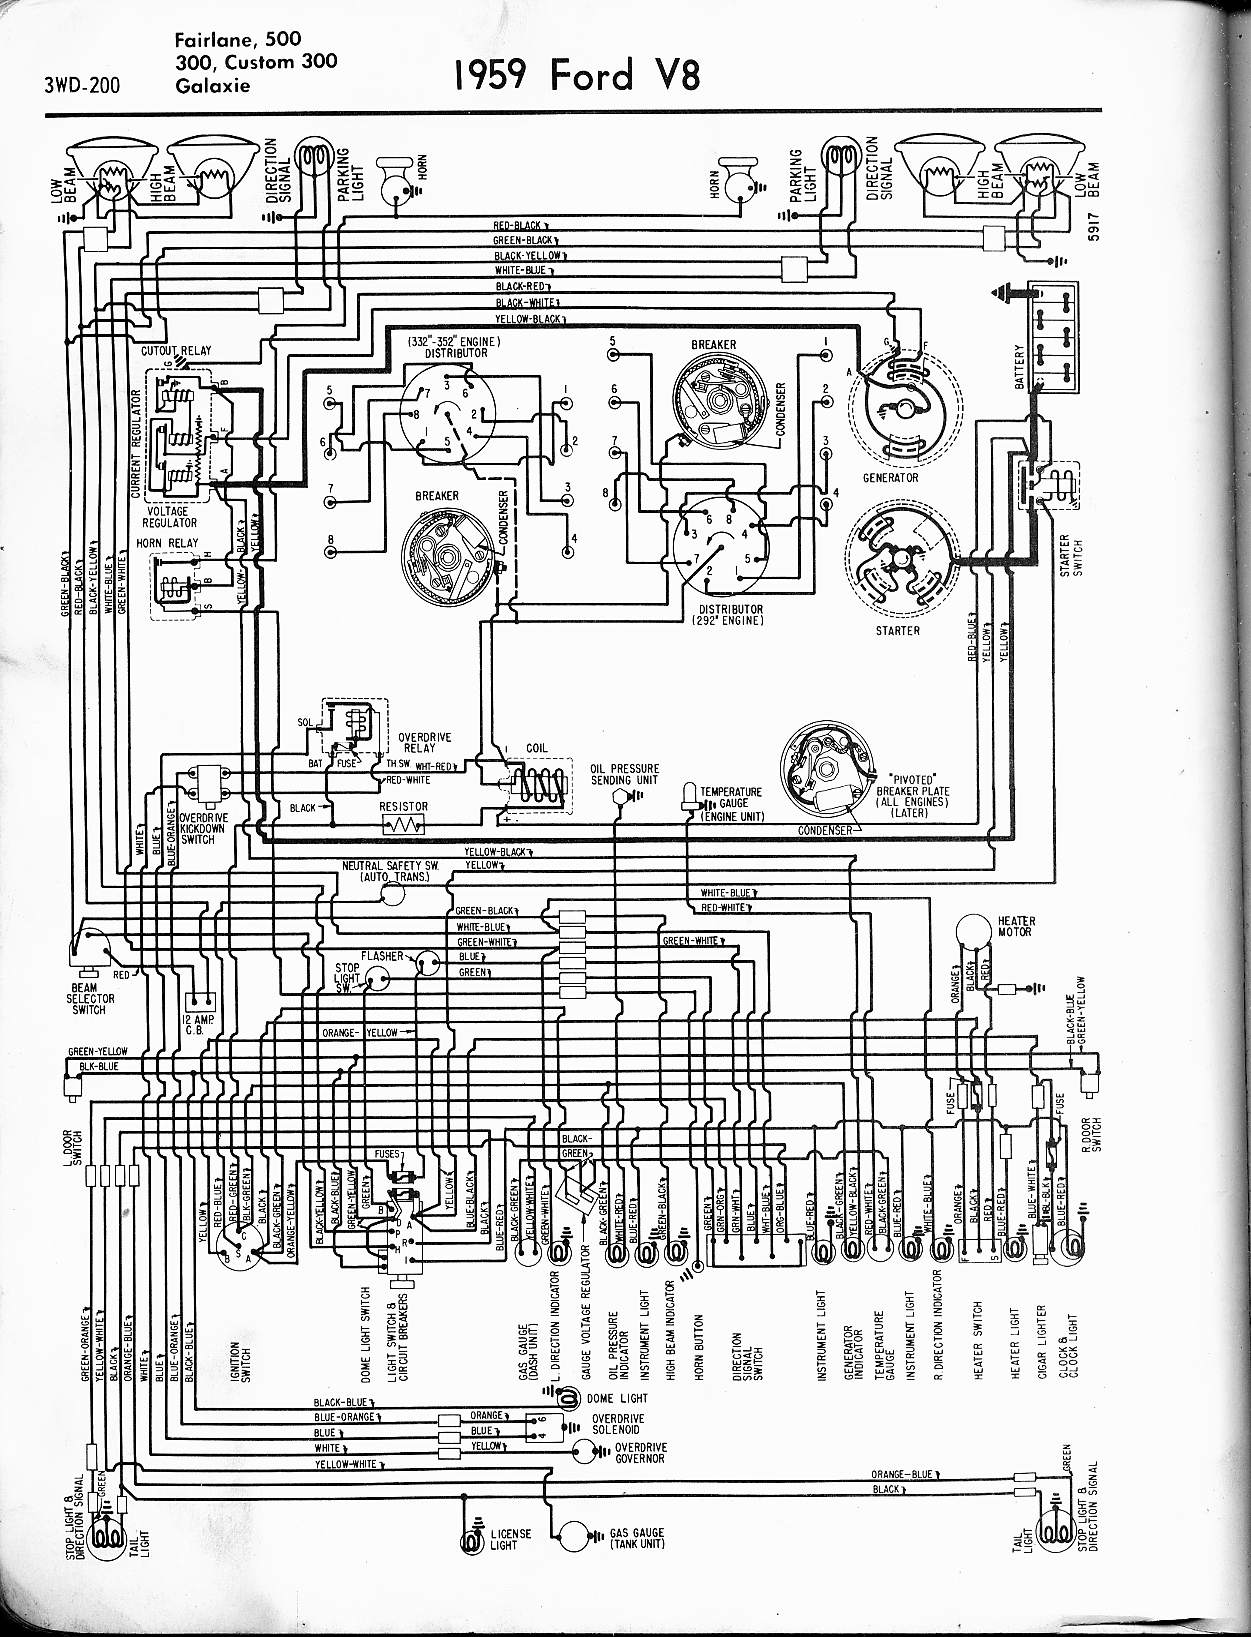 MWire5765 200 57 65 ford wiring diagrams ford wiring schematics at eliteediting.co